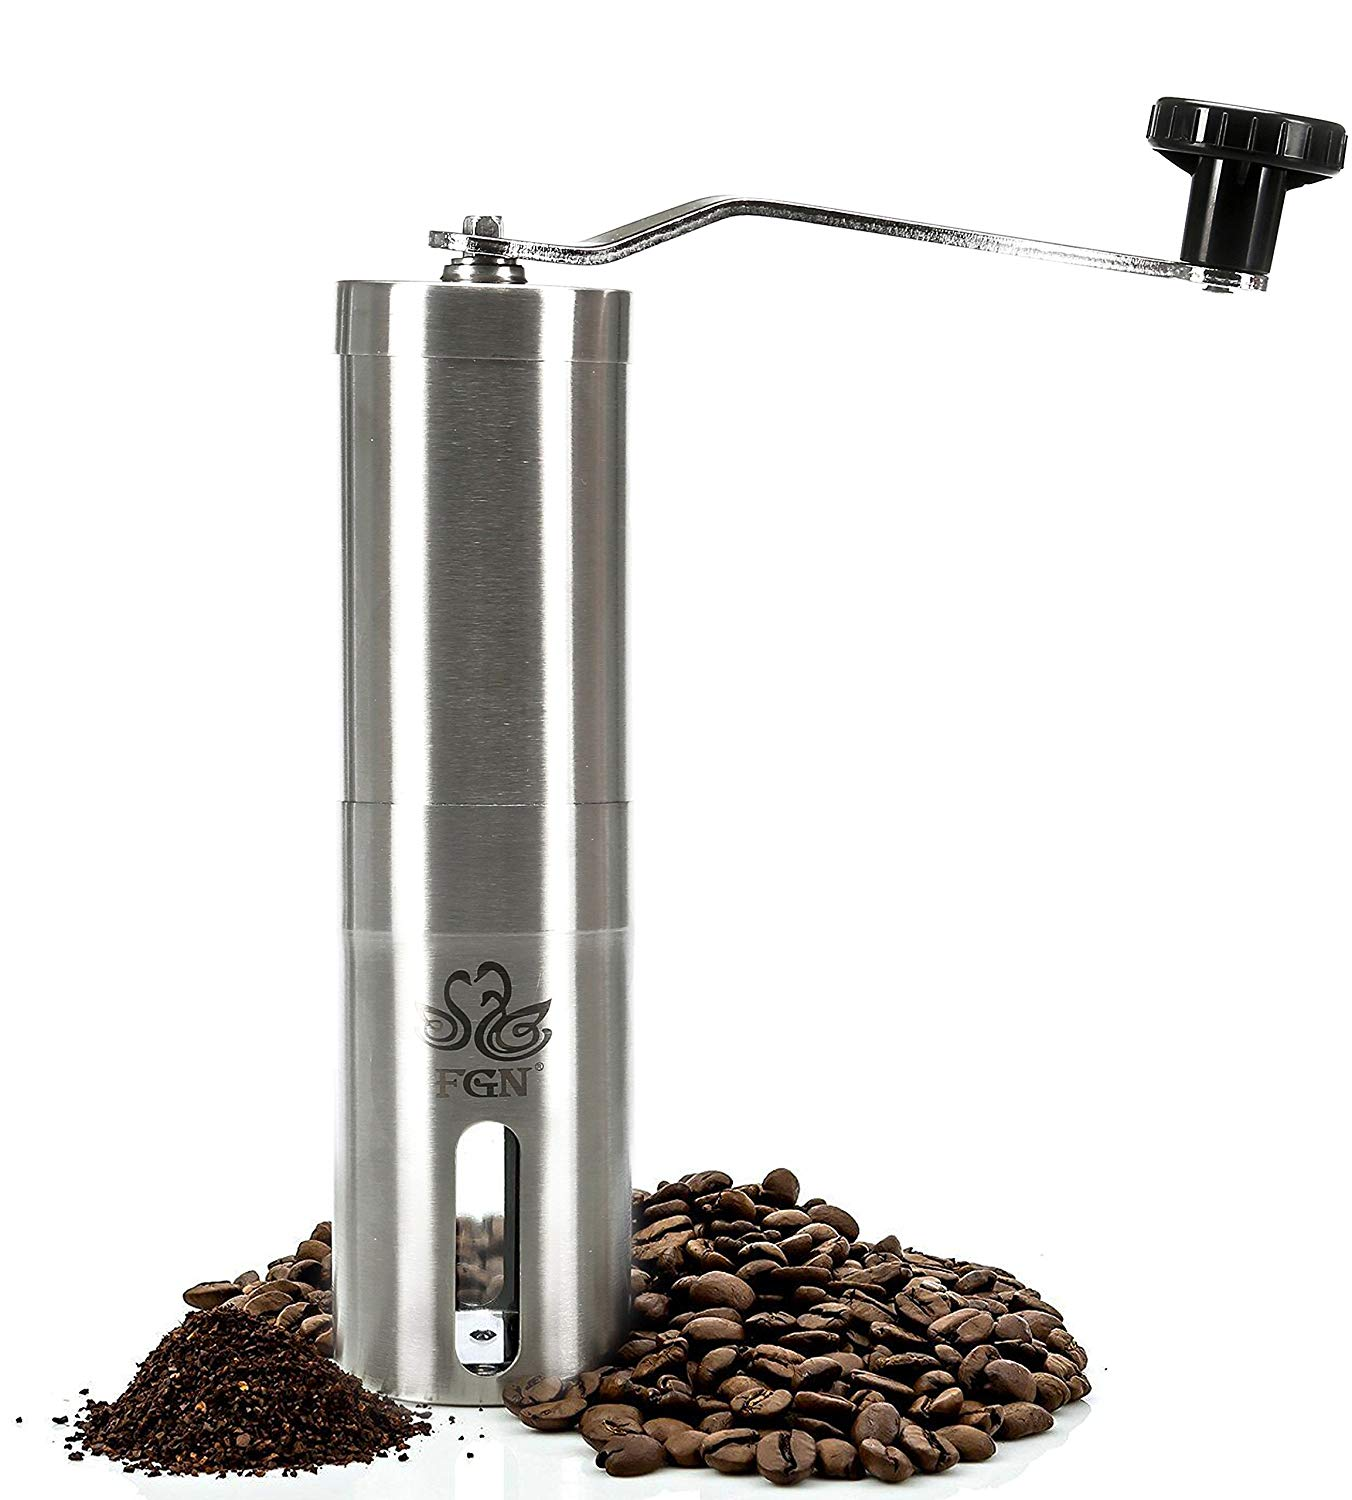 FGN Professional Stainless Steel Manual Coffee Grinder,portable Mini Coffee Mill with Heavy-duty Hand Crank, Convenient for Home, Travel and Comping Use